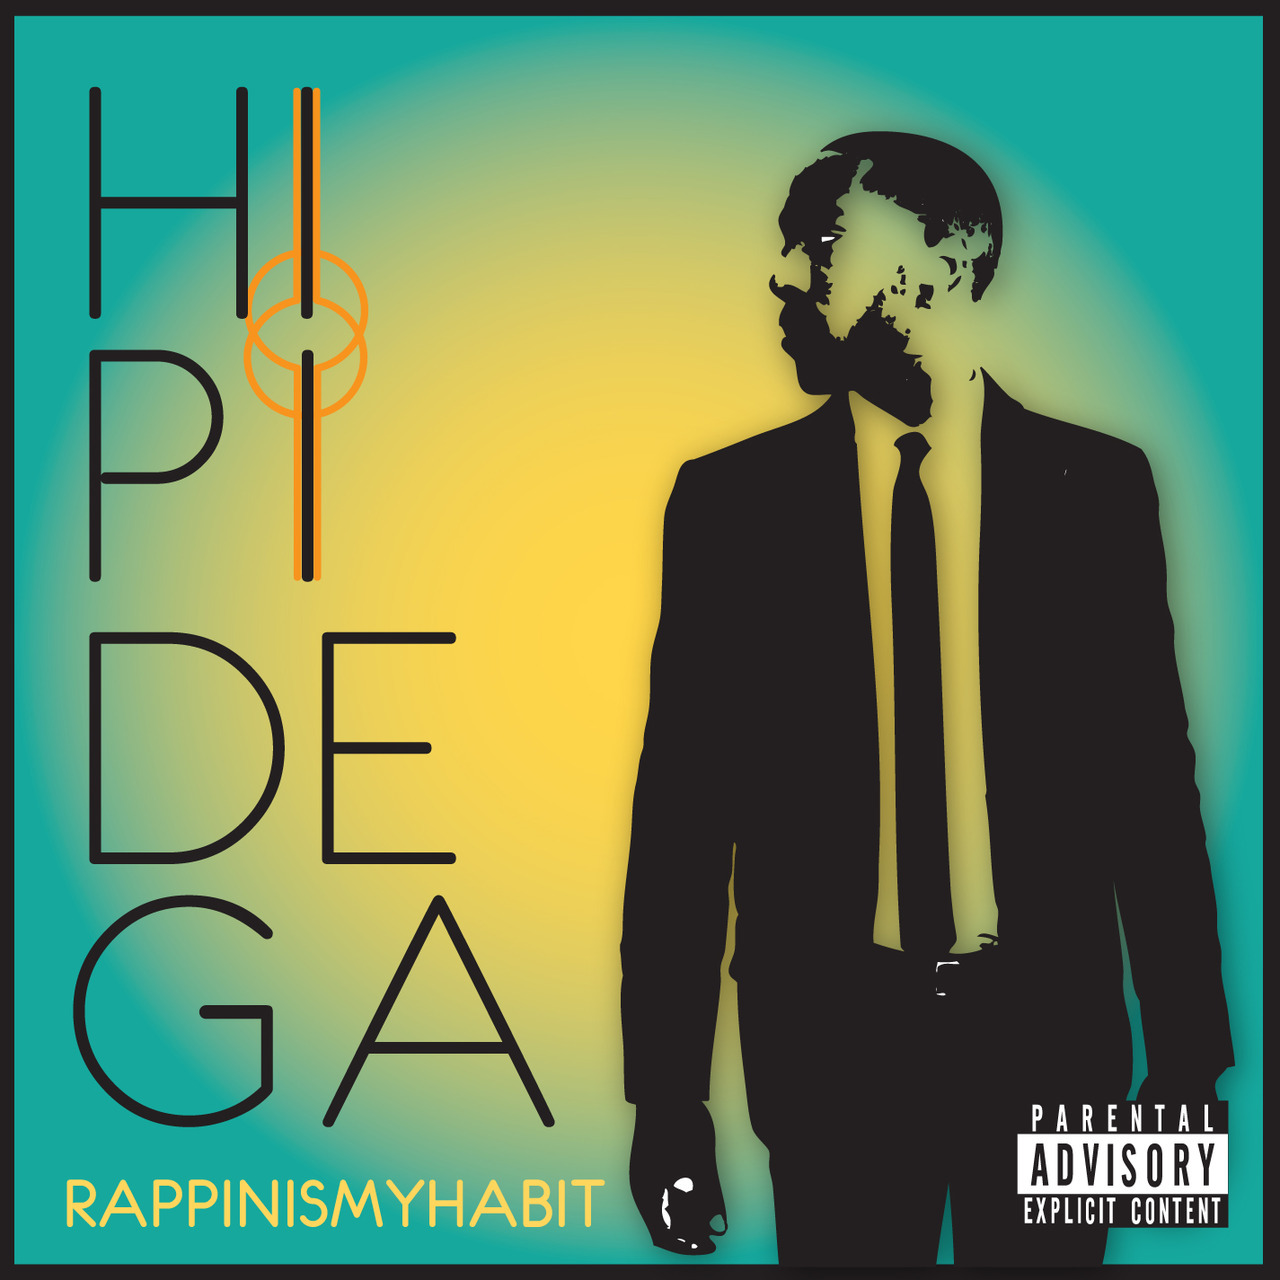 "<a href=""http://habit.bandcamp.com/album/hipi-dega"" data-mce-href=""http://habit.bandcamp.com/album/hipi-dega"">Hipi-Dega by Rappinismyhabit aka Habit</a>   Hipi is to open eyes, Dega is to understand. This project takes you through my emotions as I navigate the world inside (the world I create for myself), as well the world outside, (the one that everyone else creates). This project has definitely been the most intimae and introspective of my work. I always say my personal development as a young man reflects in my music; and vise versa, as I grow personally so does my artistry. The title ""Hipi Dega"" was inspired by Mk Asante's book ""It's bigger than hip hop: The Rise of a Post Hip Hop Generation"". There is a chapter of the book that touches on how much our English vernacular is inspired by parts of Africa, in particular the Wolof tribes of West Africa. So in essence, the title is not only a call to action, but also an ode to the rich African history that inspires me. The beauty in putting this project together is that it grew so organically. I had no intention of doing an album, but as I began writing and recording songs, they seemed to naturally fall inline. It's said that art gives order to experience, well for me that is exactly what Hipi-Dega has become. I truly hope you enjoy it. Special thanks to everyone that has helped me put this project together. Erika Granberry, Fresh Lamonte, Wavy Marv, Dj Burn, Jc, & Tyler Cymone. Warmest regards, Habit"